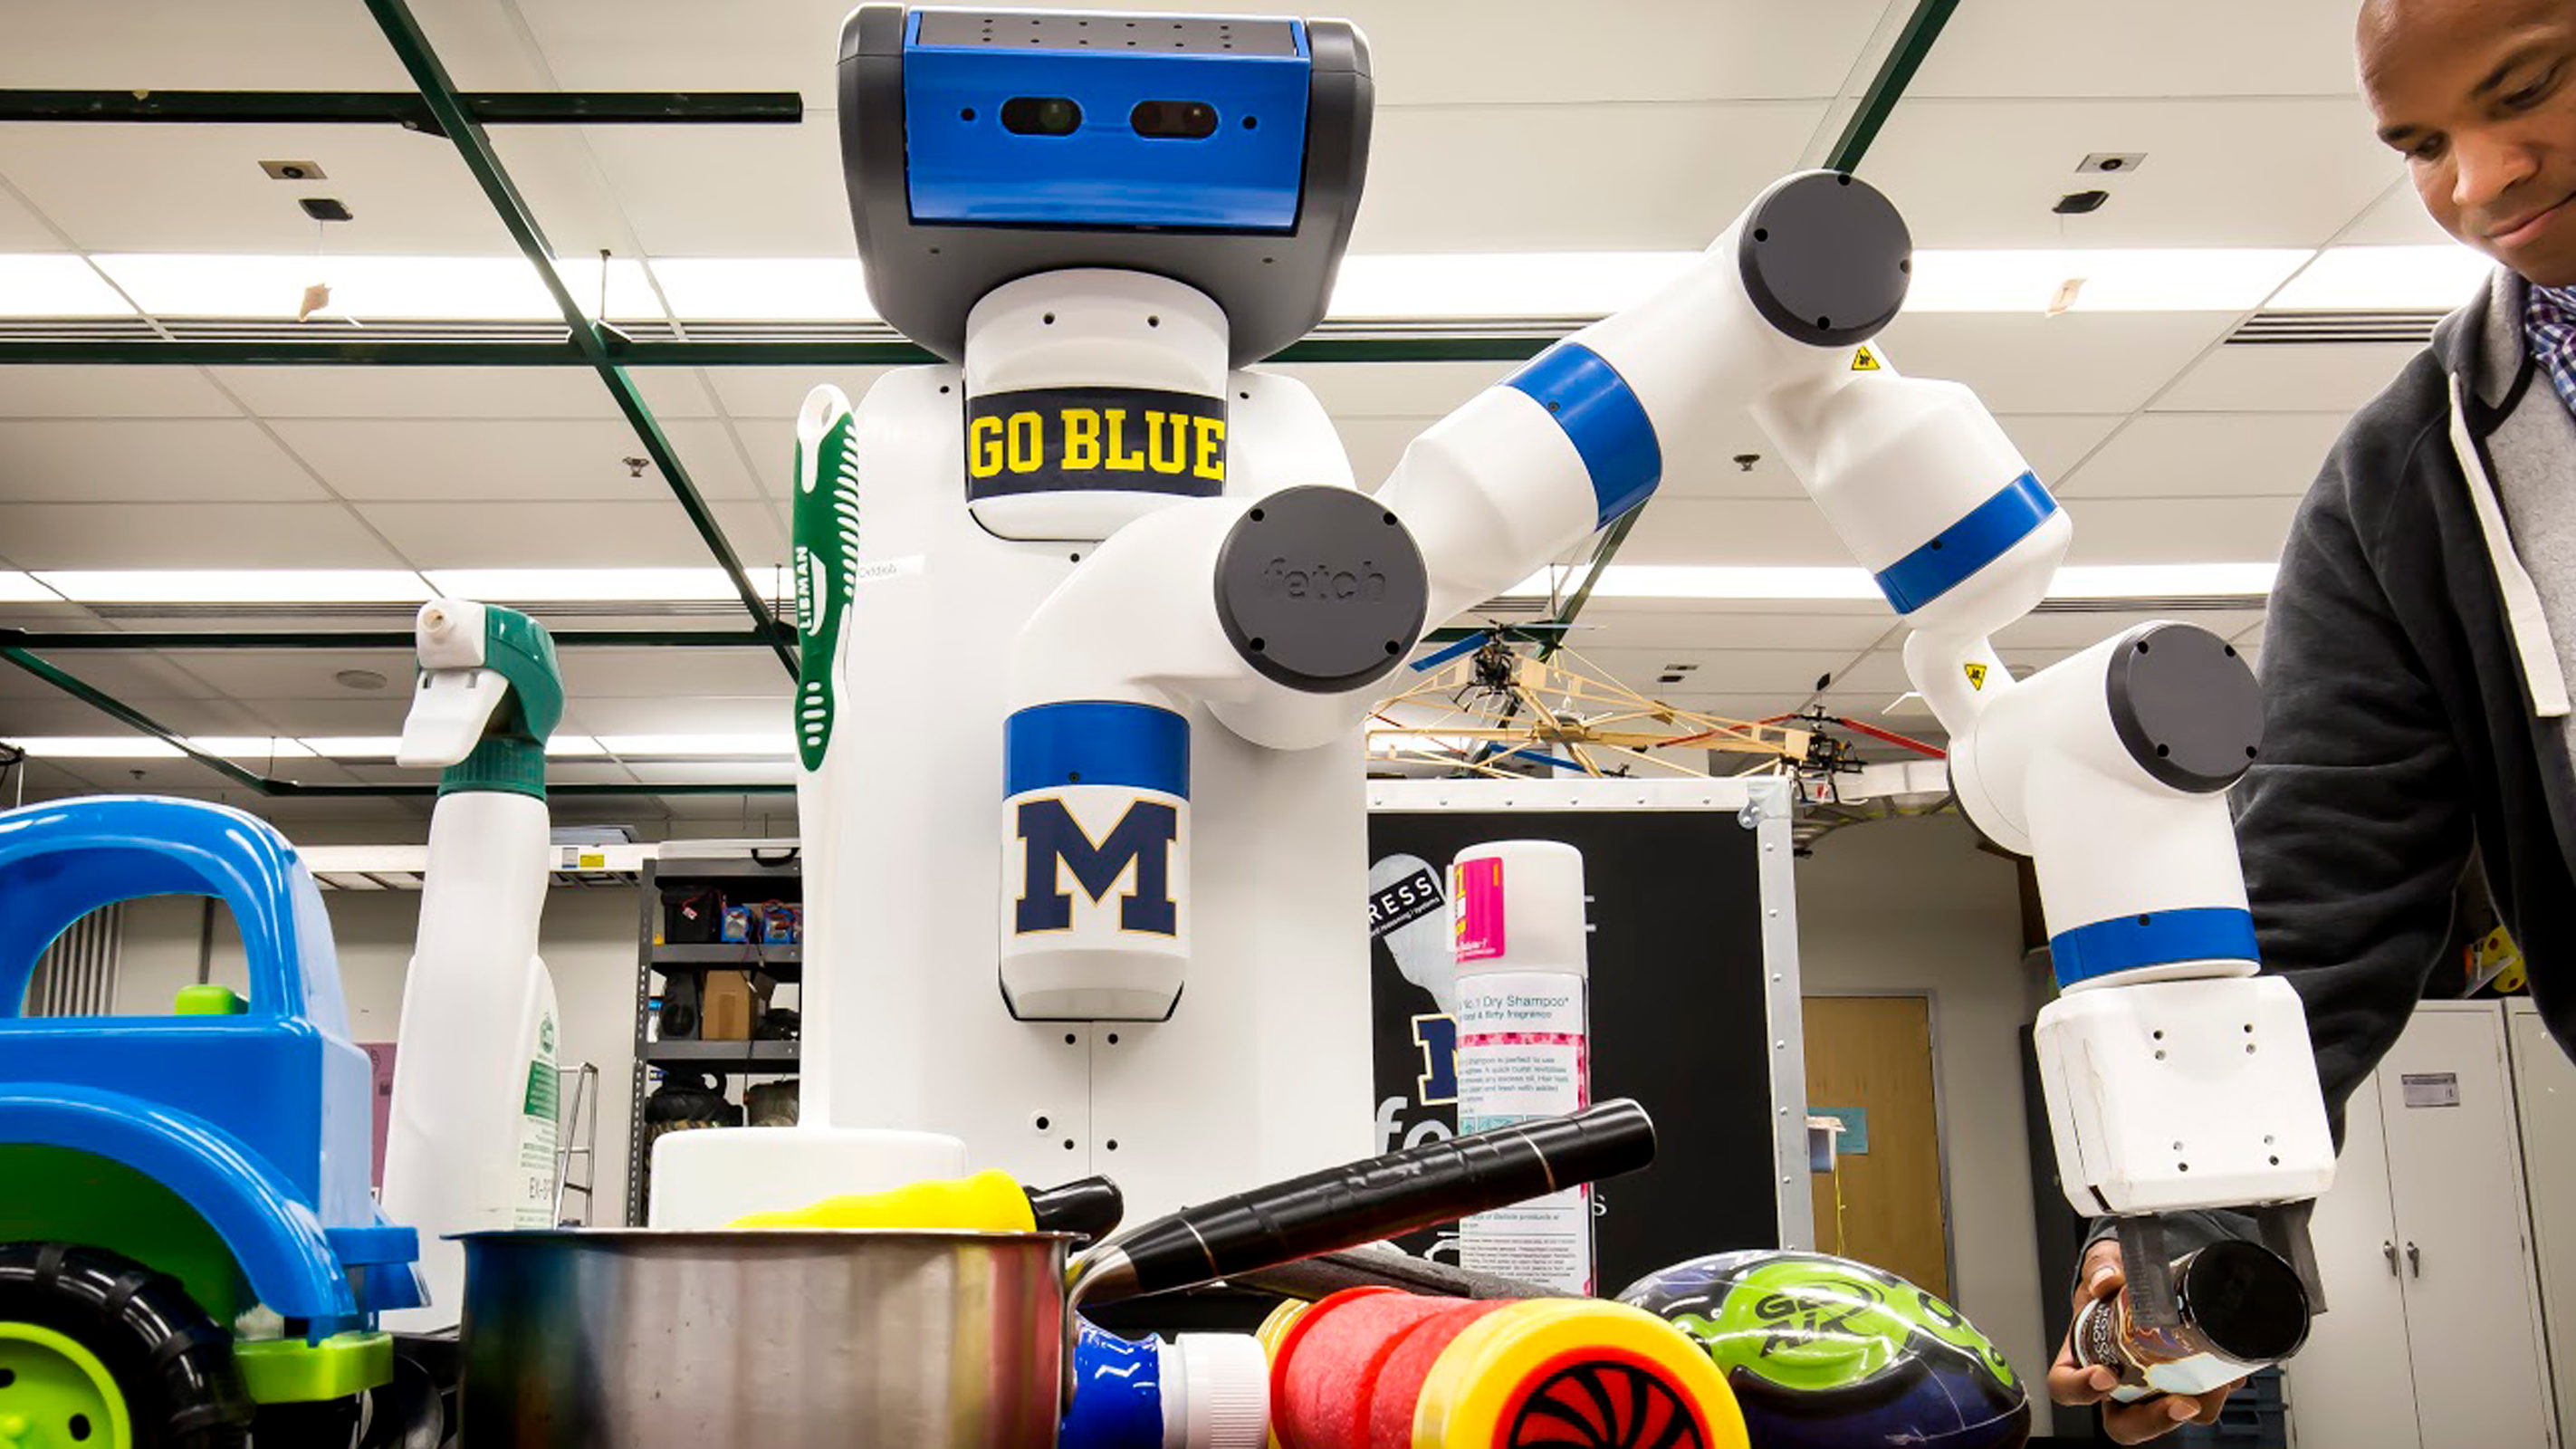 Robotics – The Michigan Engineer News Center